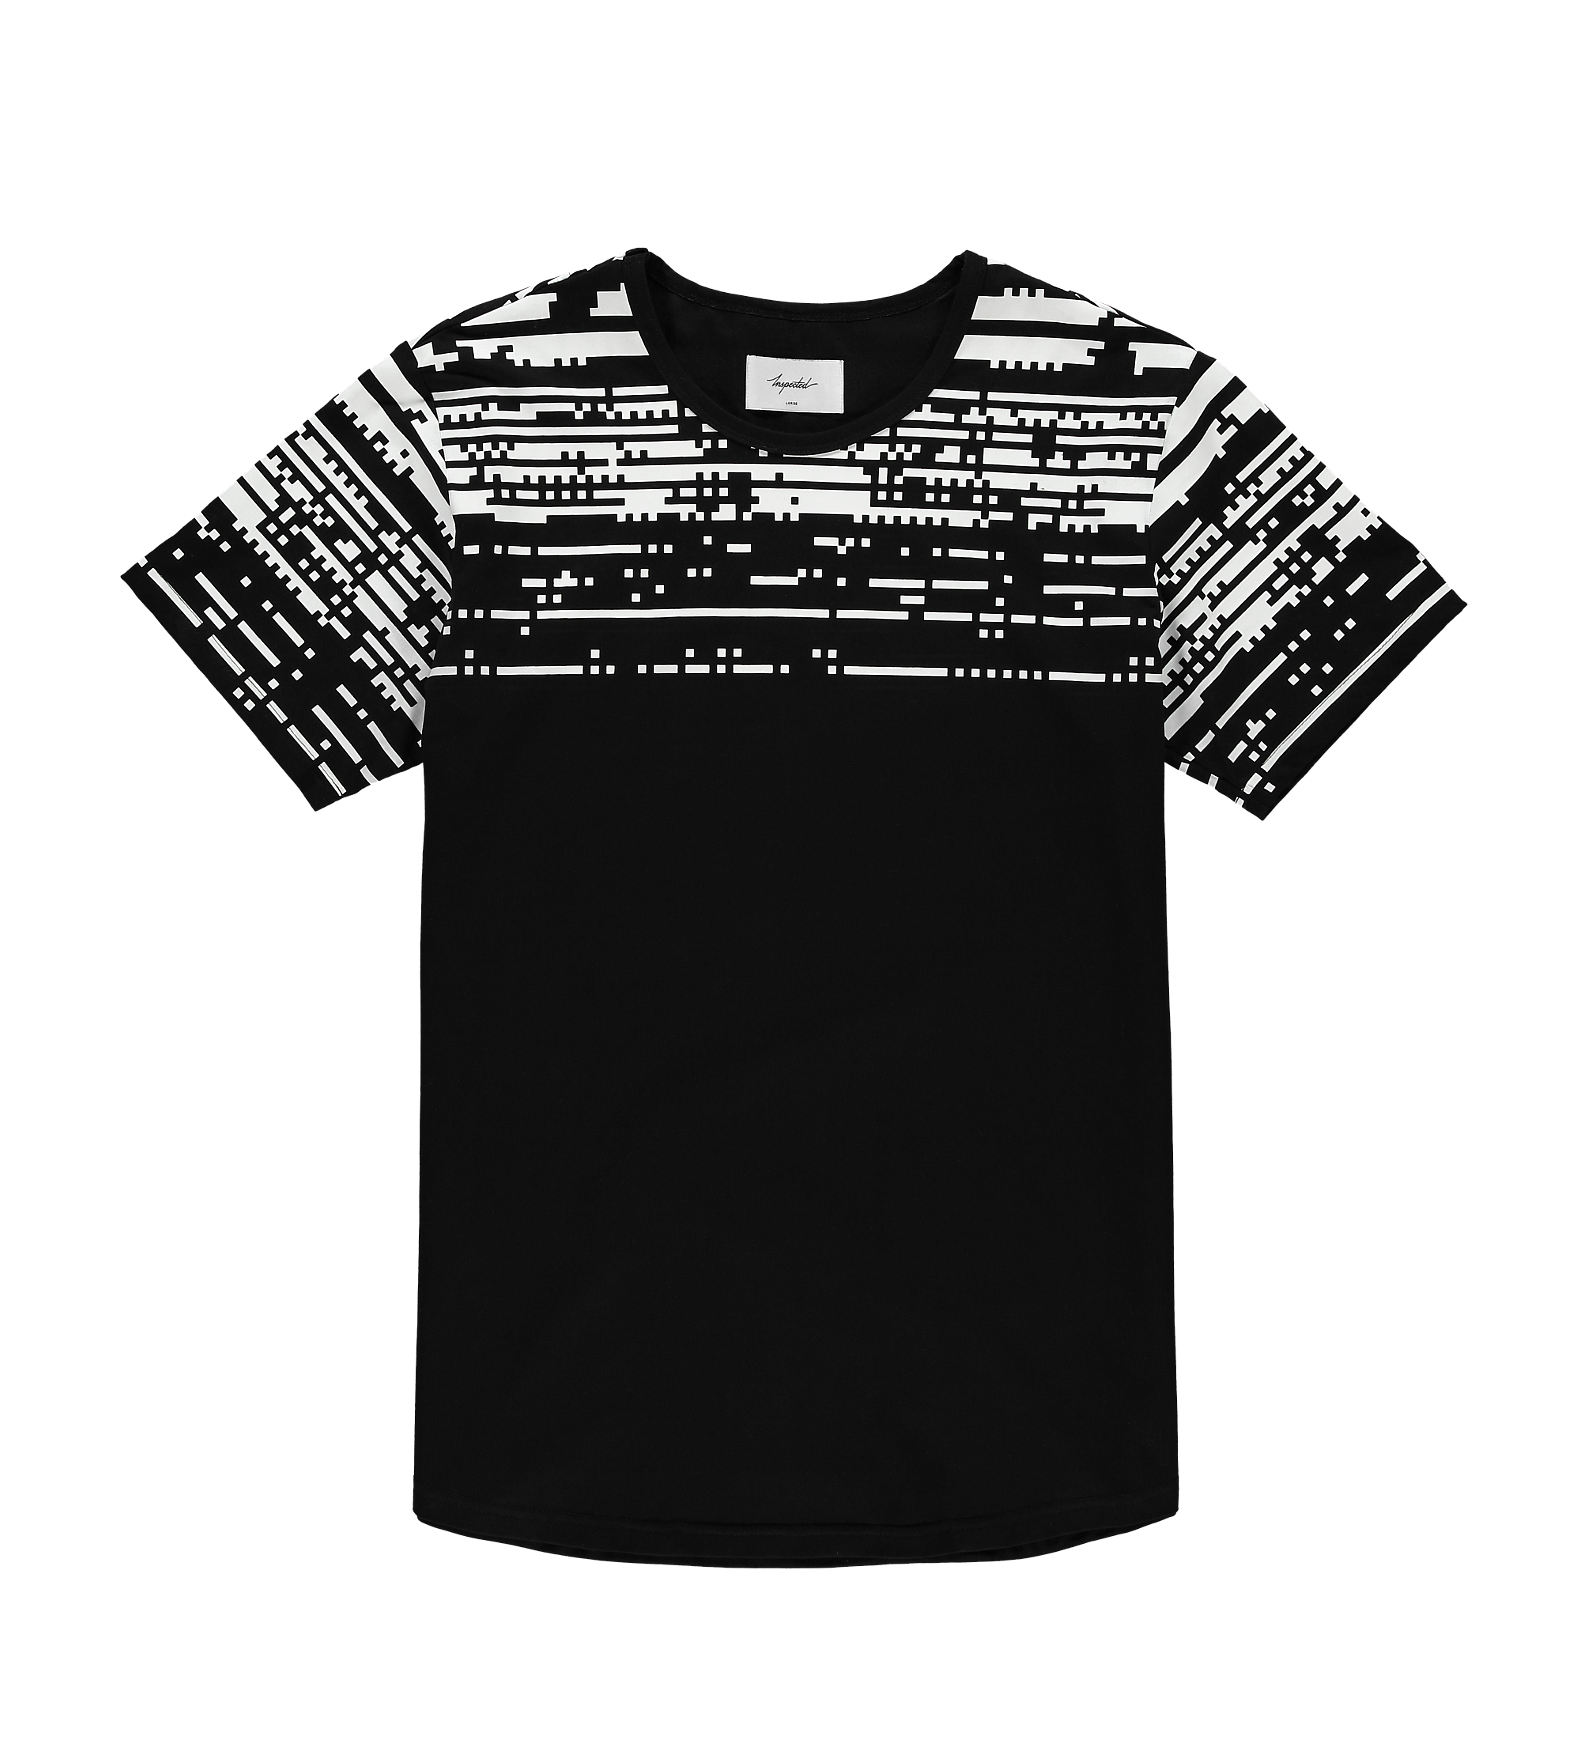 Theory T-Shirt — Black